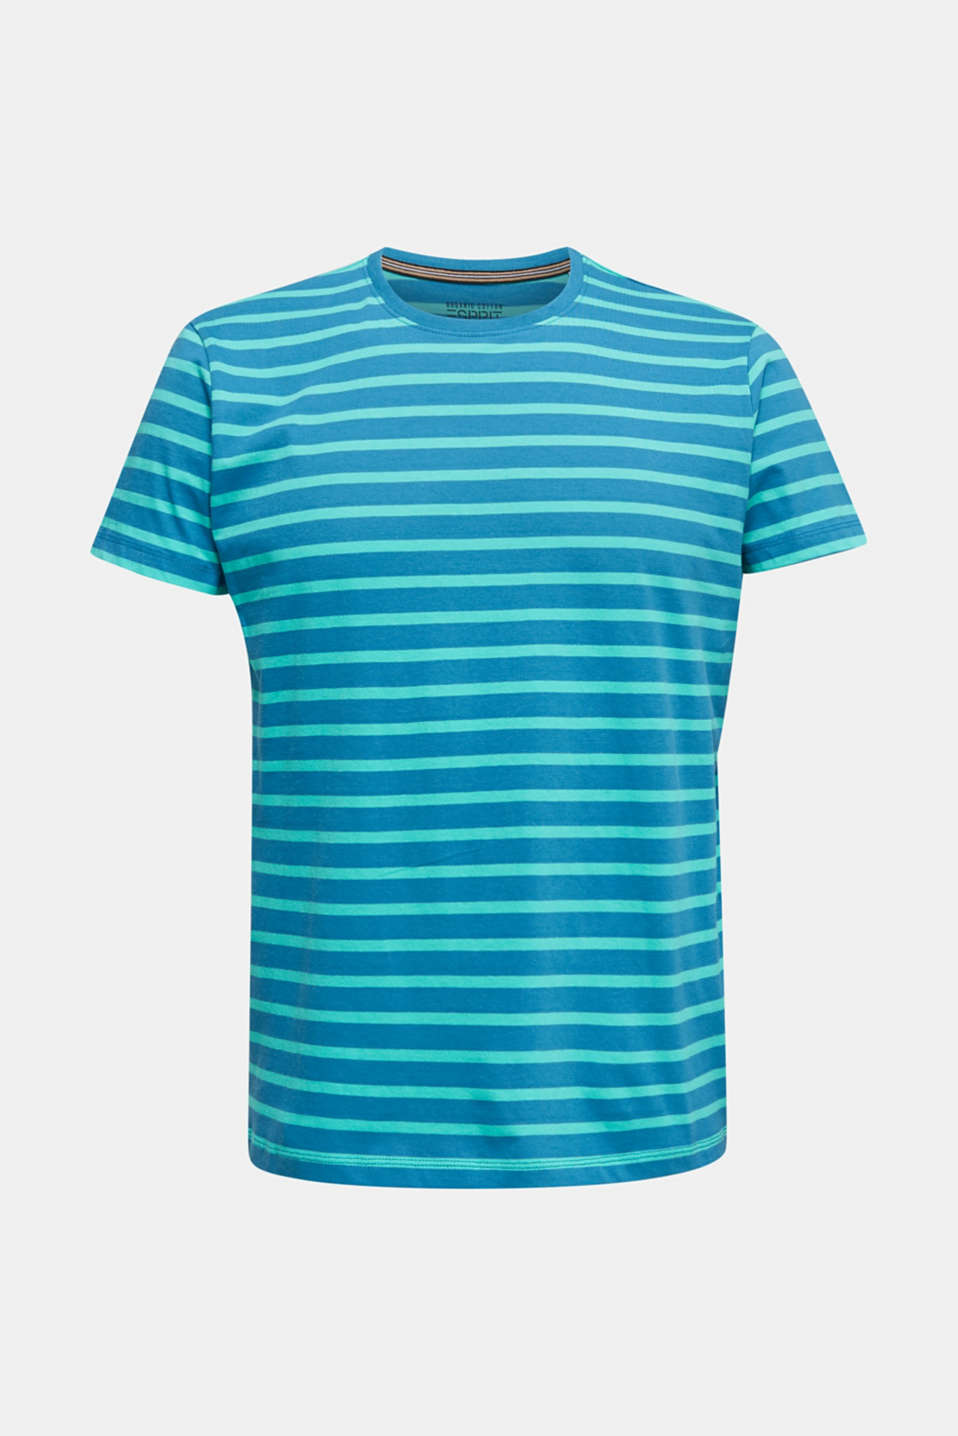 Jersey T-shirt with stripes, 100% cotton, PETROL BLUE 3, detail image number 7